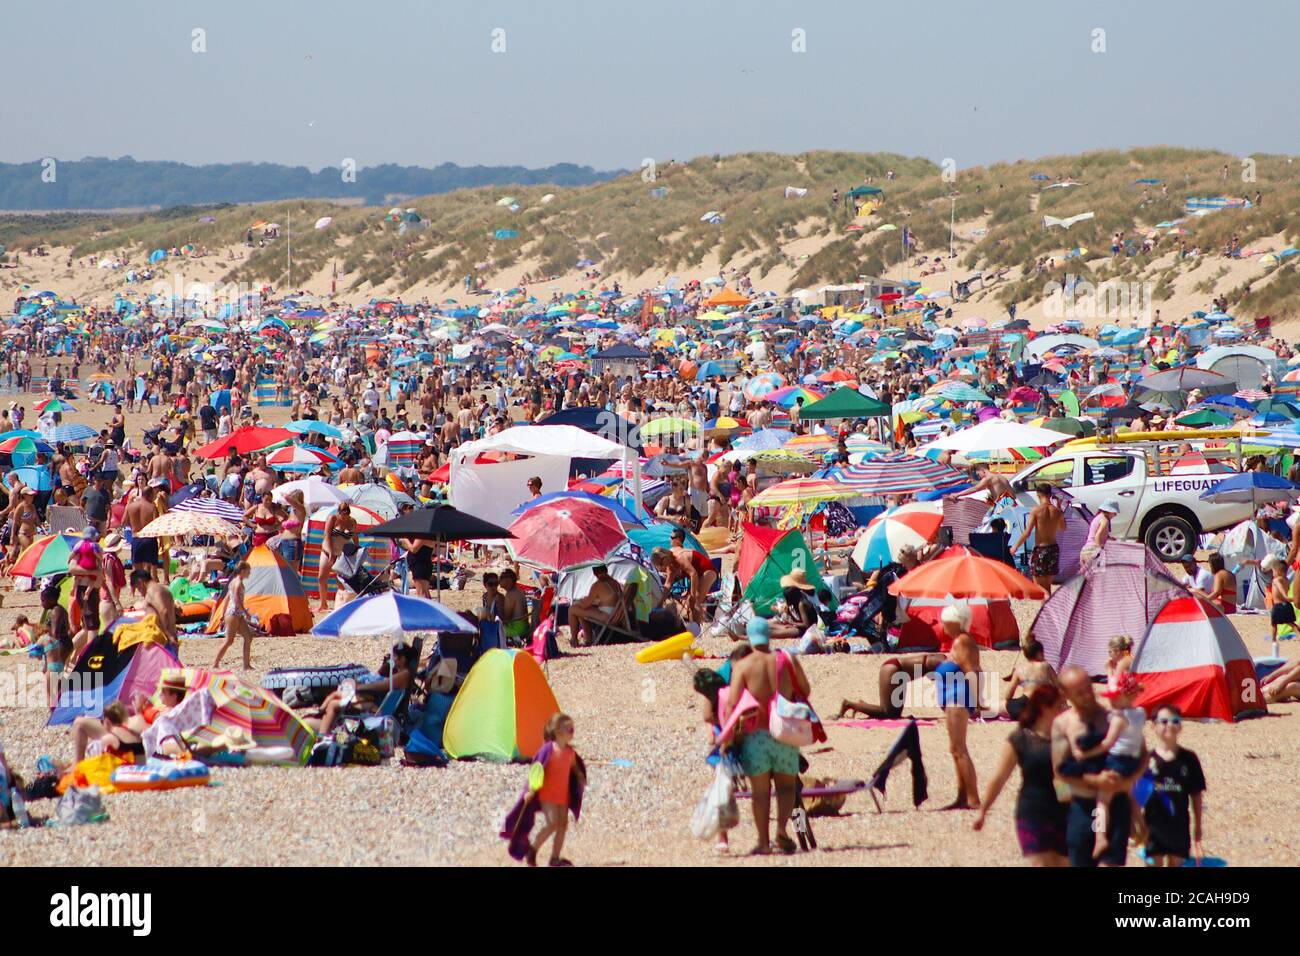 Camber, East Sussex, UK. 07 Aug, 2020. UK Weather: Likely to be one of the hottest days of the year so far with the Met Office predicting temperatures into the 30's, Camber Sands in East Sussex is expecting large crowds of people to take advantage of the golden sandy beaches. Packed busy beach in summer. Photo Credit: Paul Lawrenson-PAL Media/Alamy Live News Stock Photo